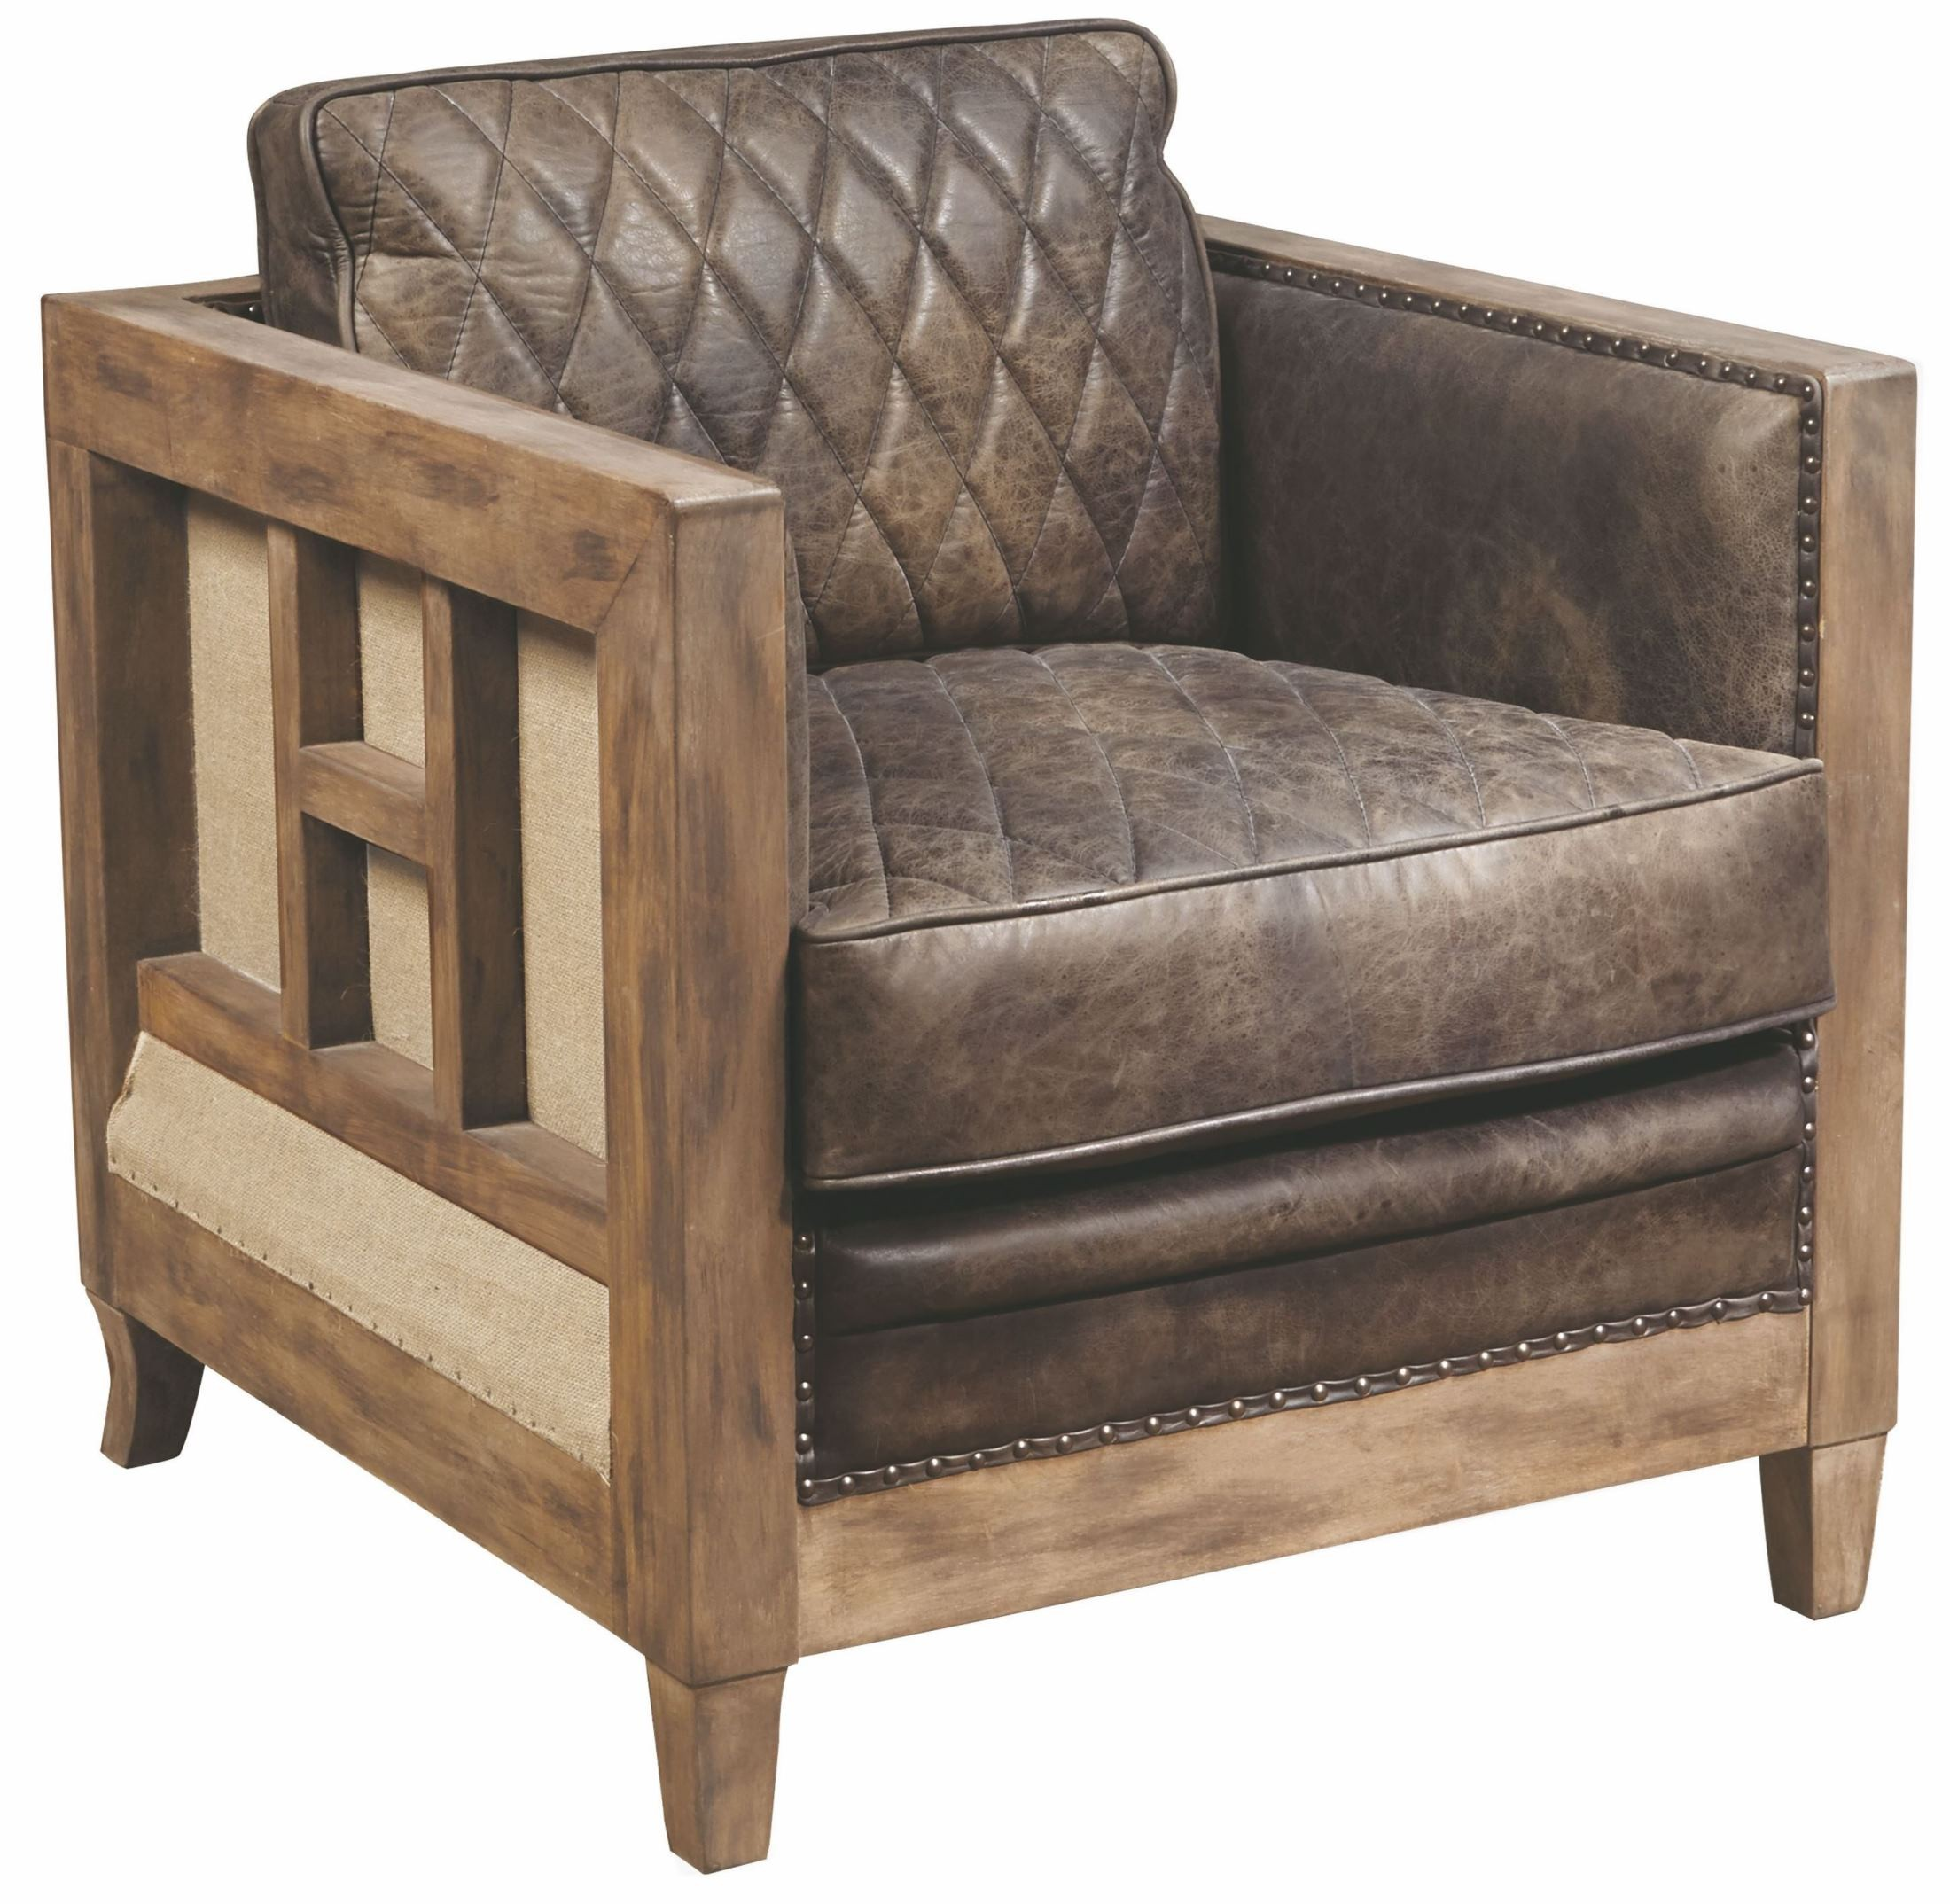 Brown Accent Chairs Slater Brown Leather And Wood Accent Chair P006200 Pulaski